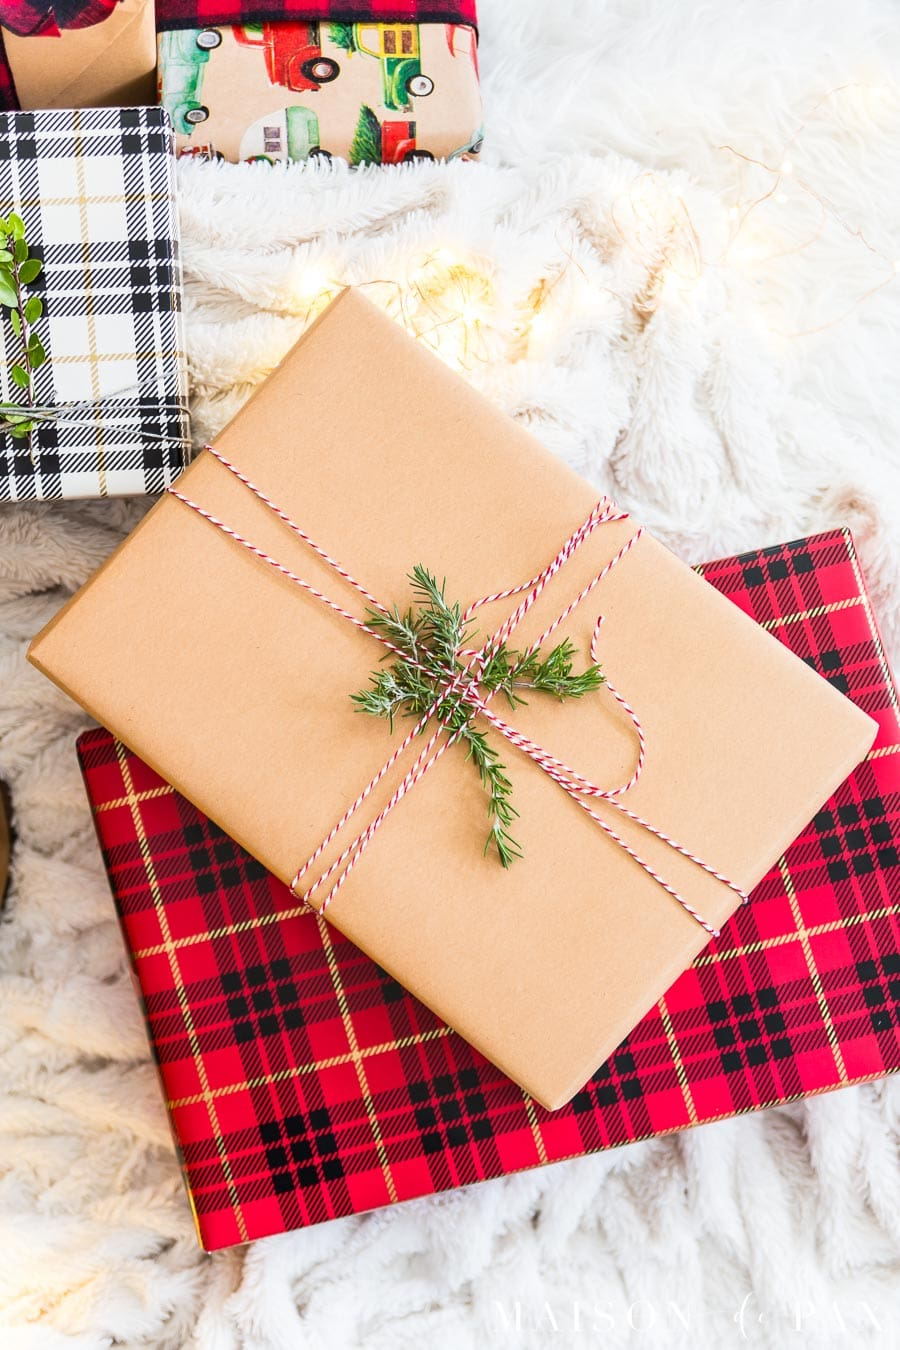 red and black plaid and brown paper packages | Maison de Pax